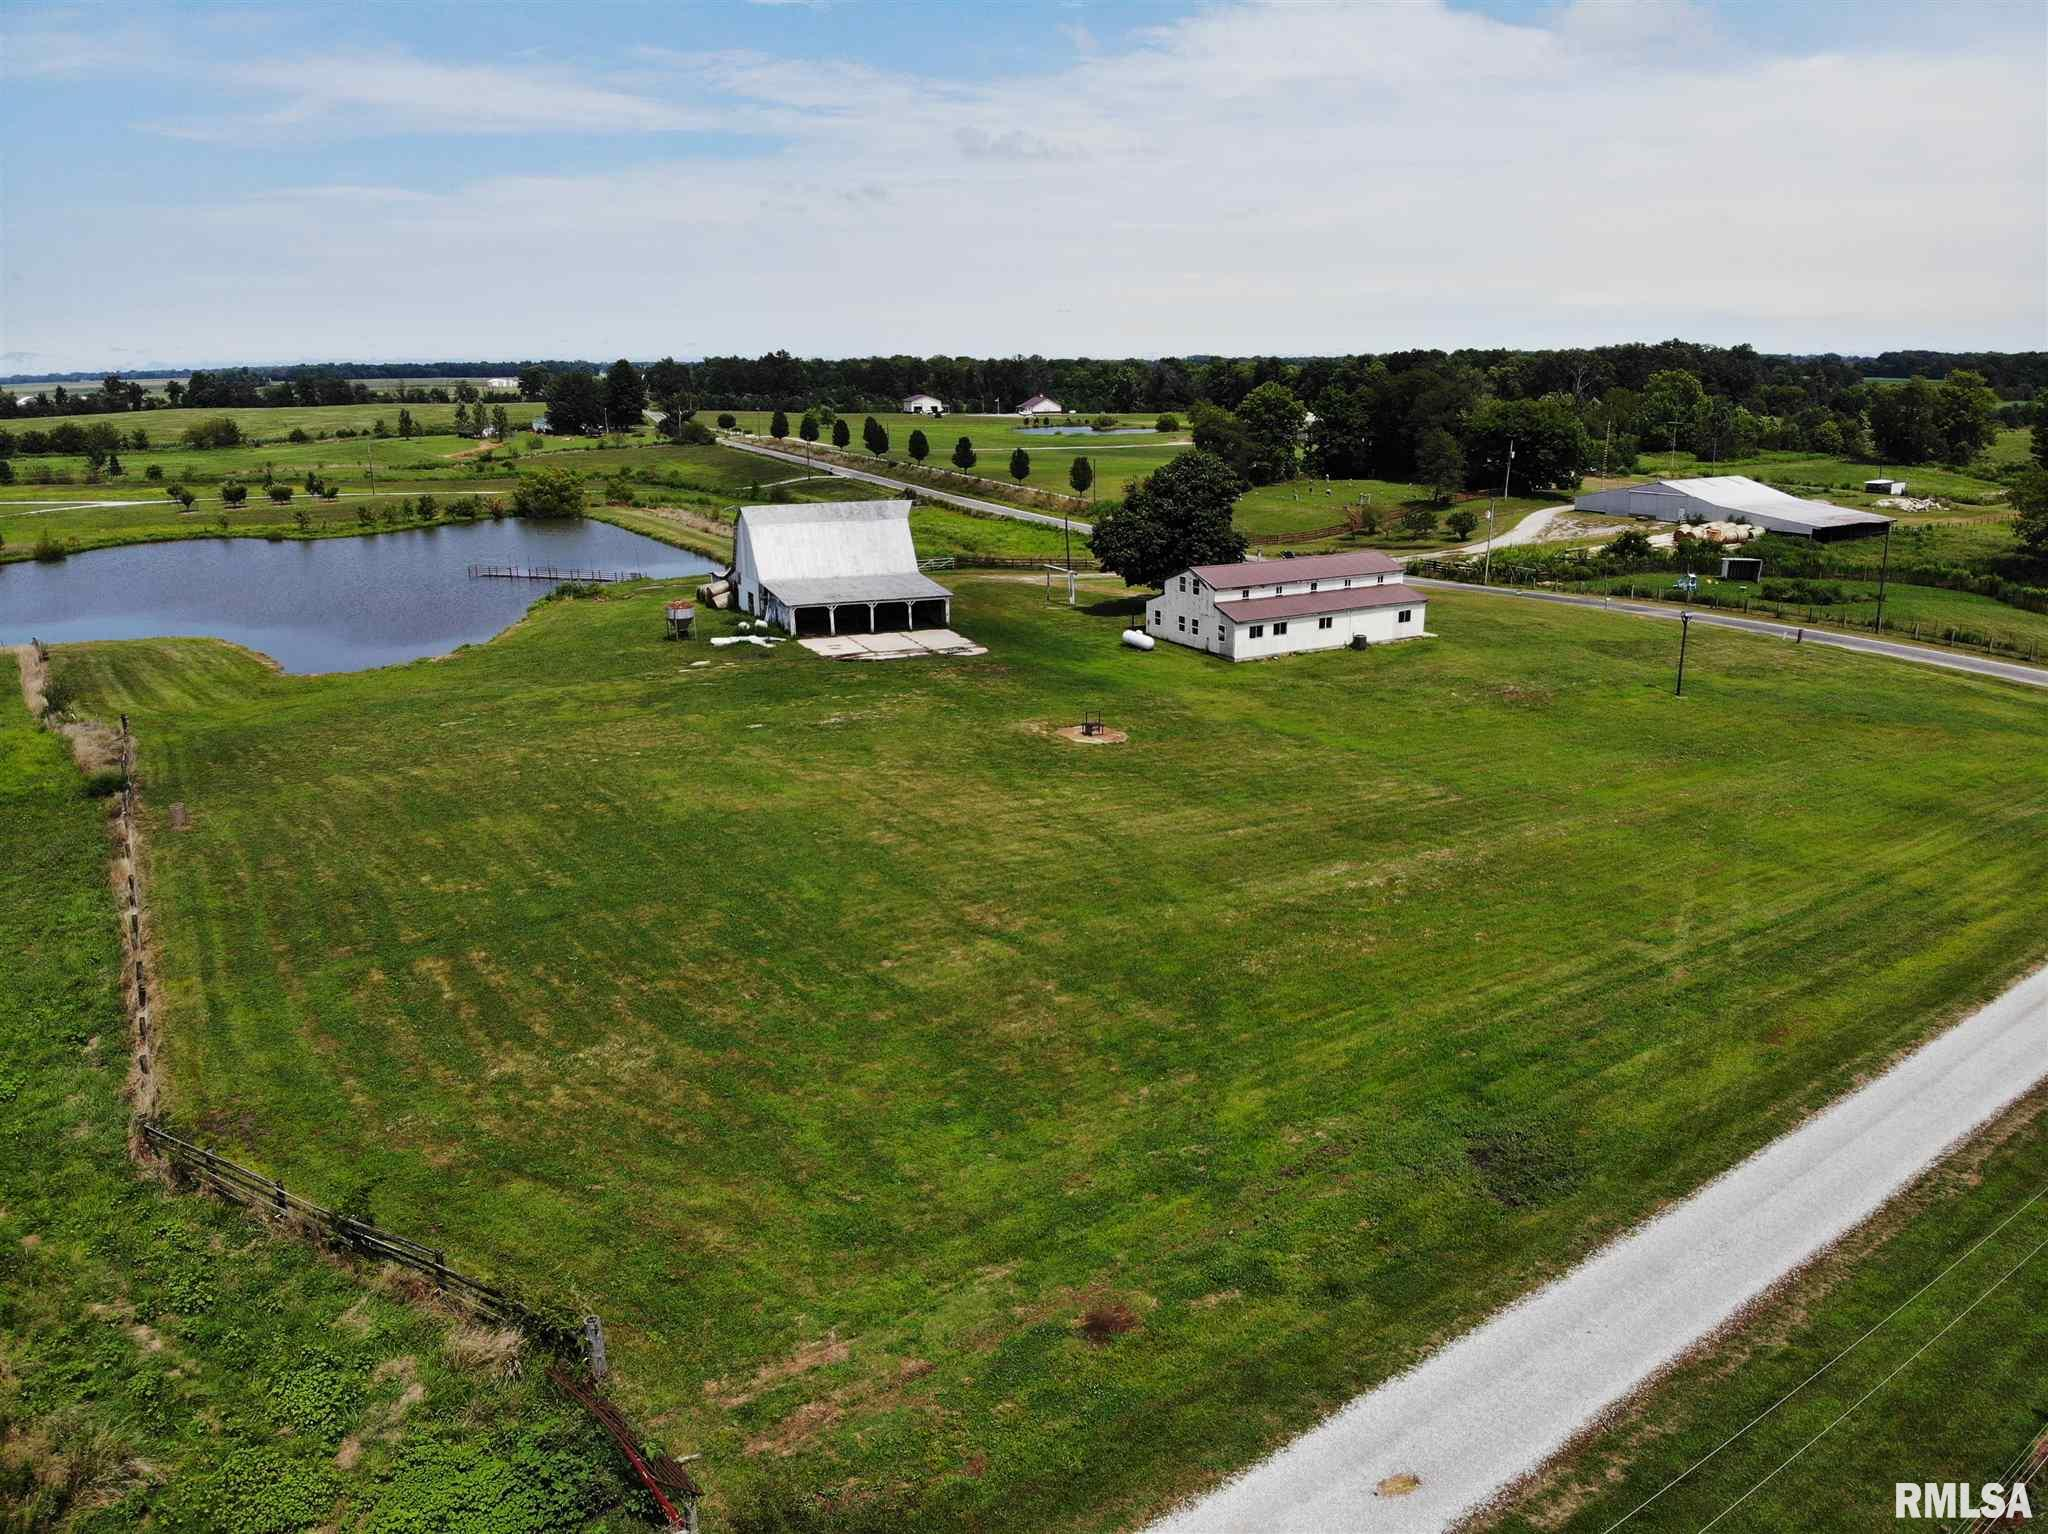 Looking for a few acres in the country, already set up for horses, goats, or any other farm animals?  This is it!  15 acres, a story & 1/2 pole building with 3600 floor area, 1680 upstairs area, (2 bedroom up, 1 bedroom down).  Pole barn has a new high efficiency furnace, new central air conditioning, new wiring and you can set it up any way you would lite it.  There is city water and propane gas.  The large wooden barn is unique too!  It is a 36X24, has many wooden stalls, a large covered lean too, large hay storage area, has lighting, new electric to it too.  To top this off, there is a large deep pond.  Property is fenced in the back.  There is also a portion completely fenced on the north side and it also has a lean to.  No close neighbors.  This property sets just outside the city limits, so it is country living, but close to town.  A must see!